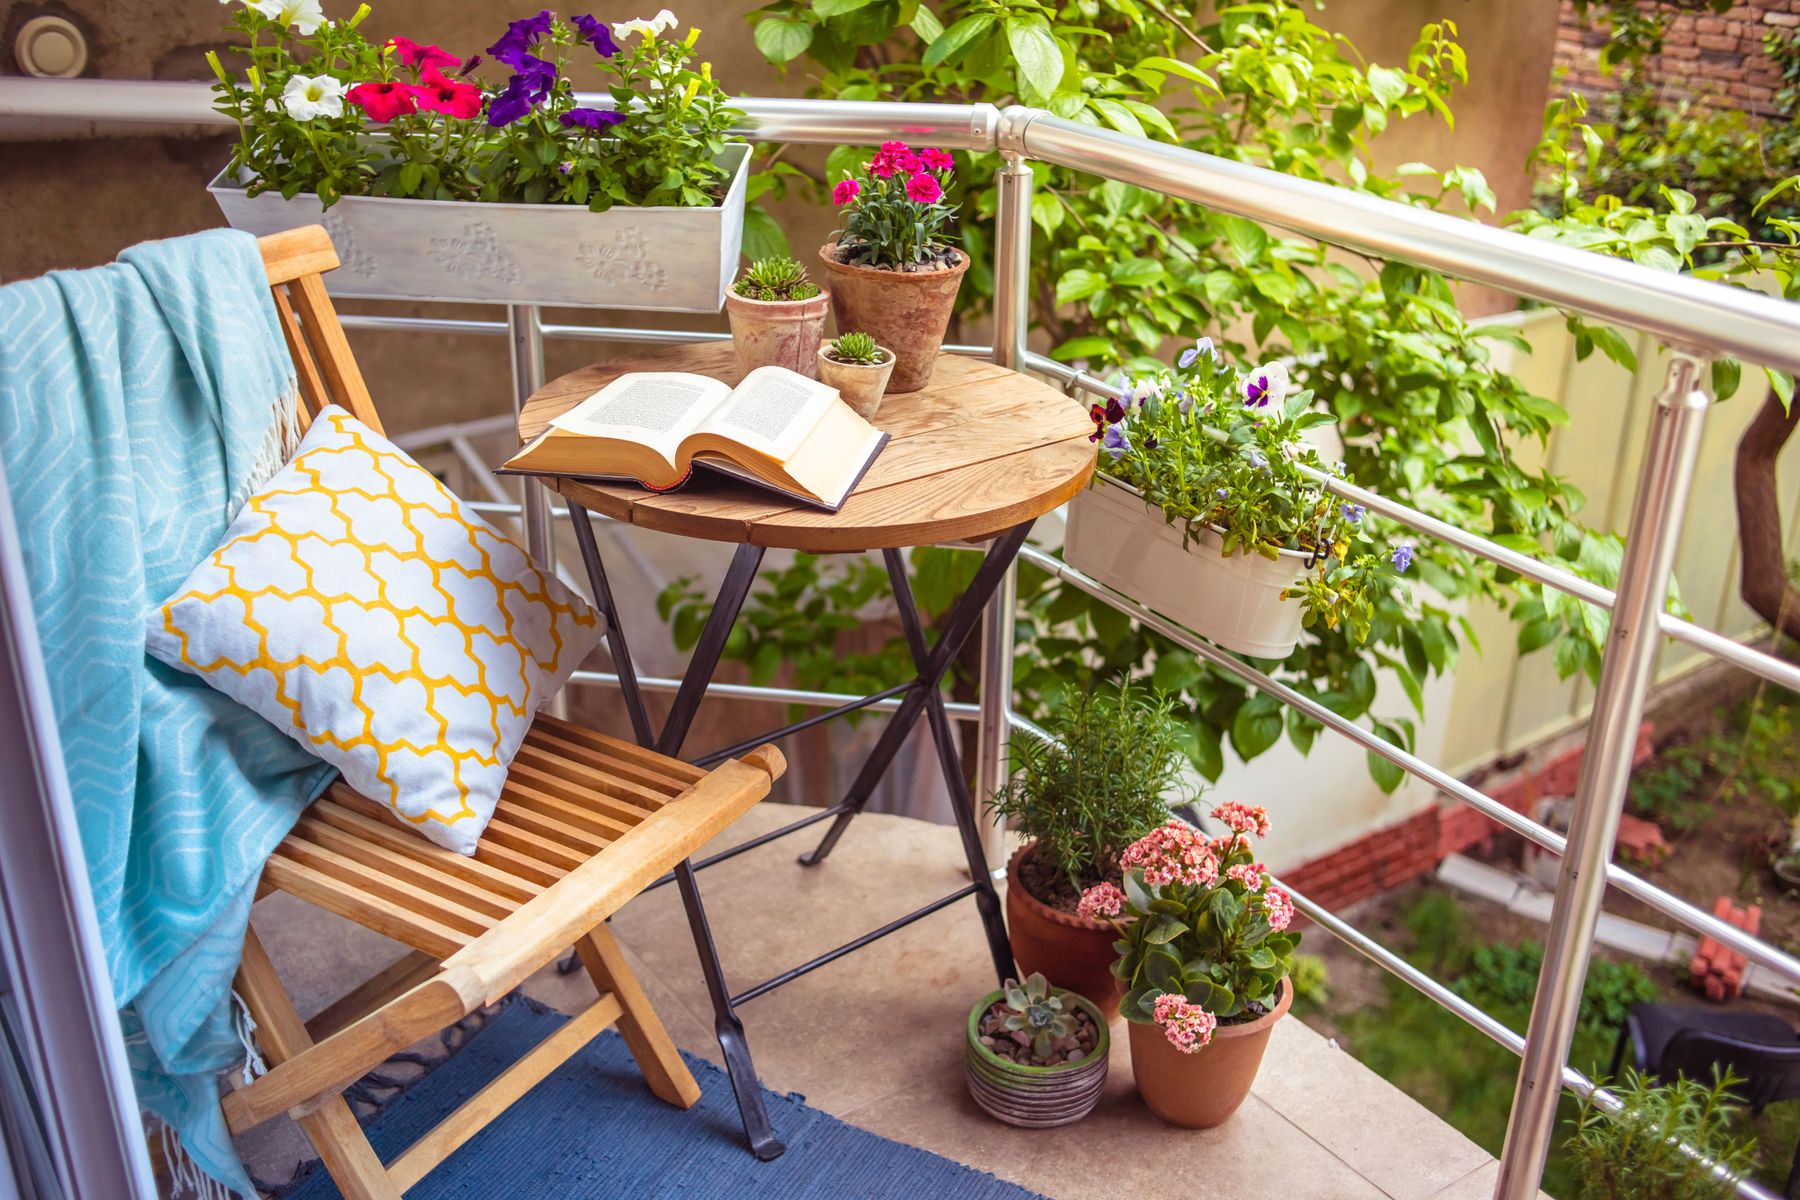 Small balcony ideas: how to make the most of the space you have